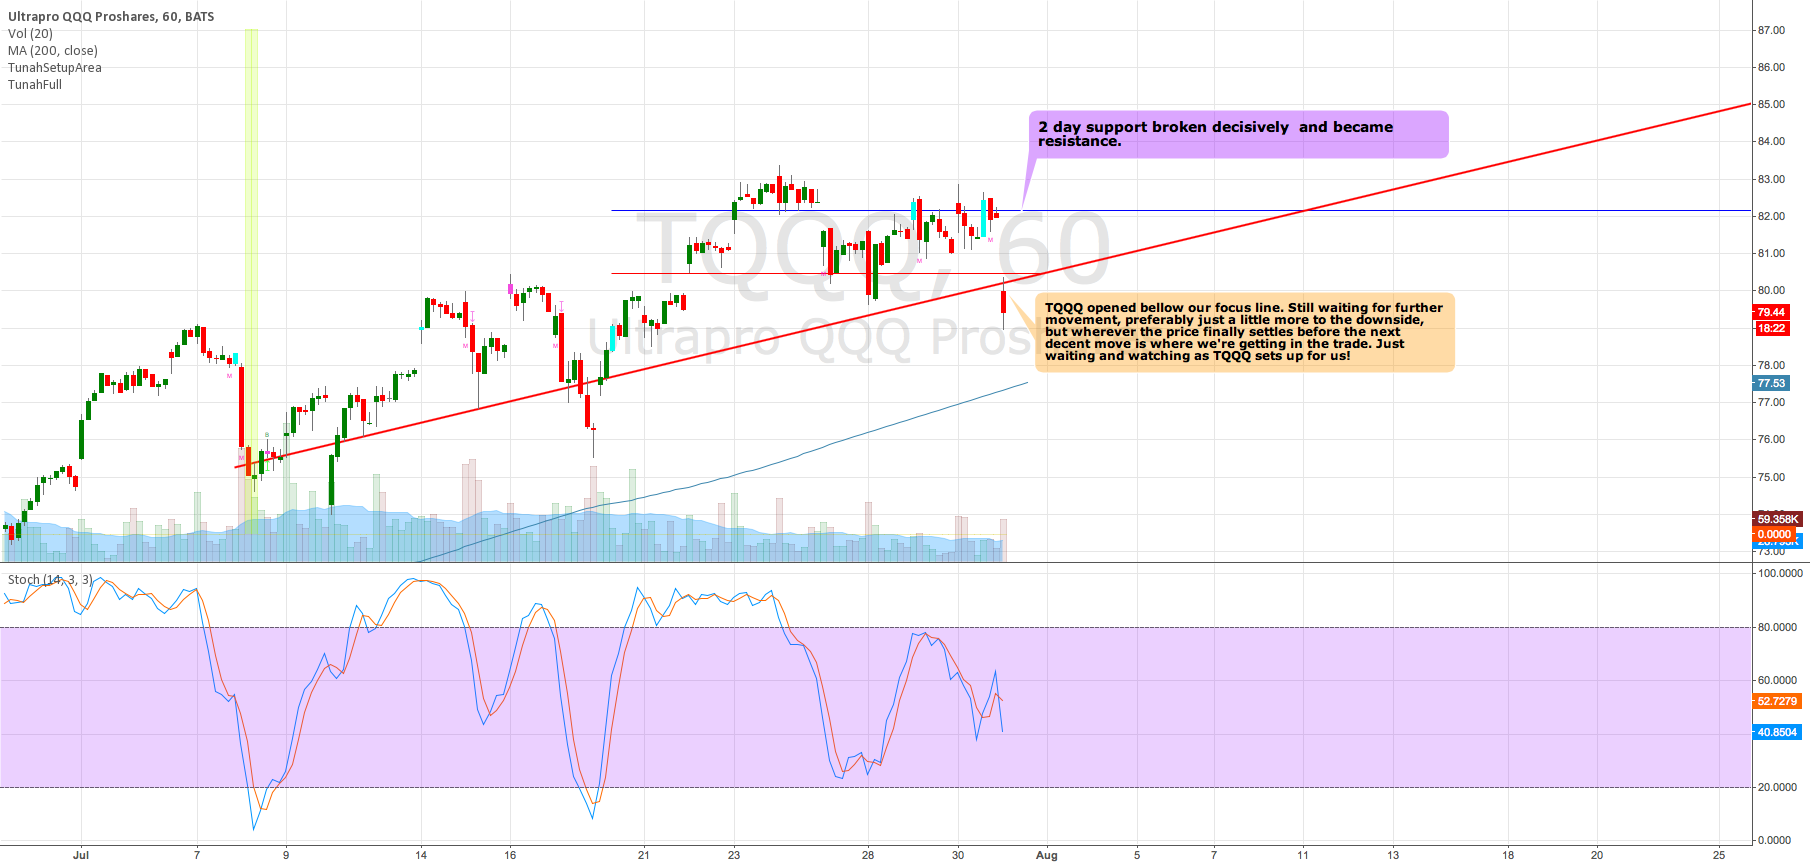 TQQQ opened bellow Focus Line as it pushes to setup for a buy.